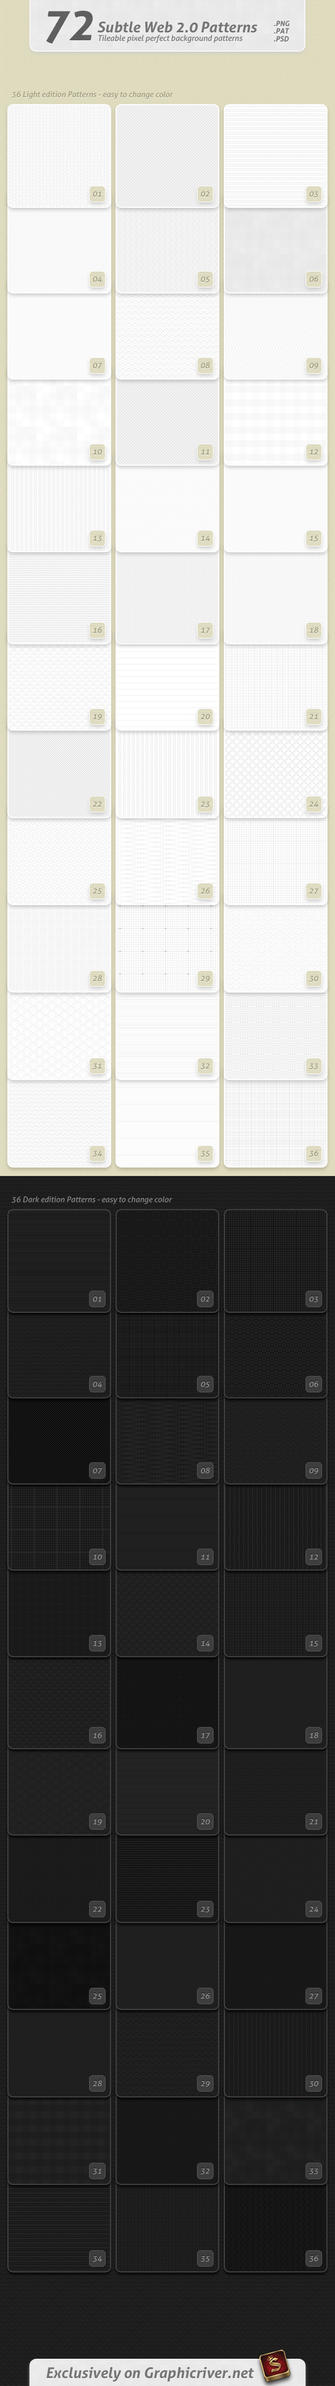 Subtle Web 2.0 Patterns by survivorcz